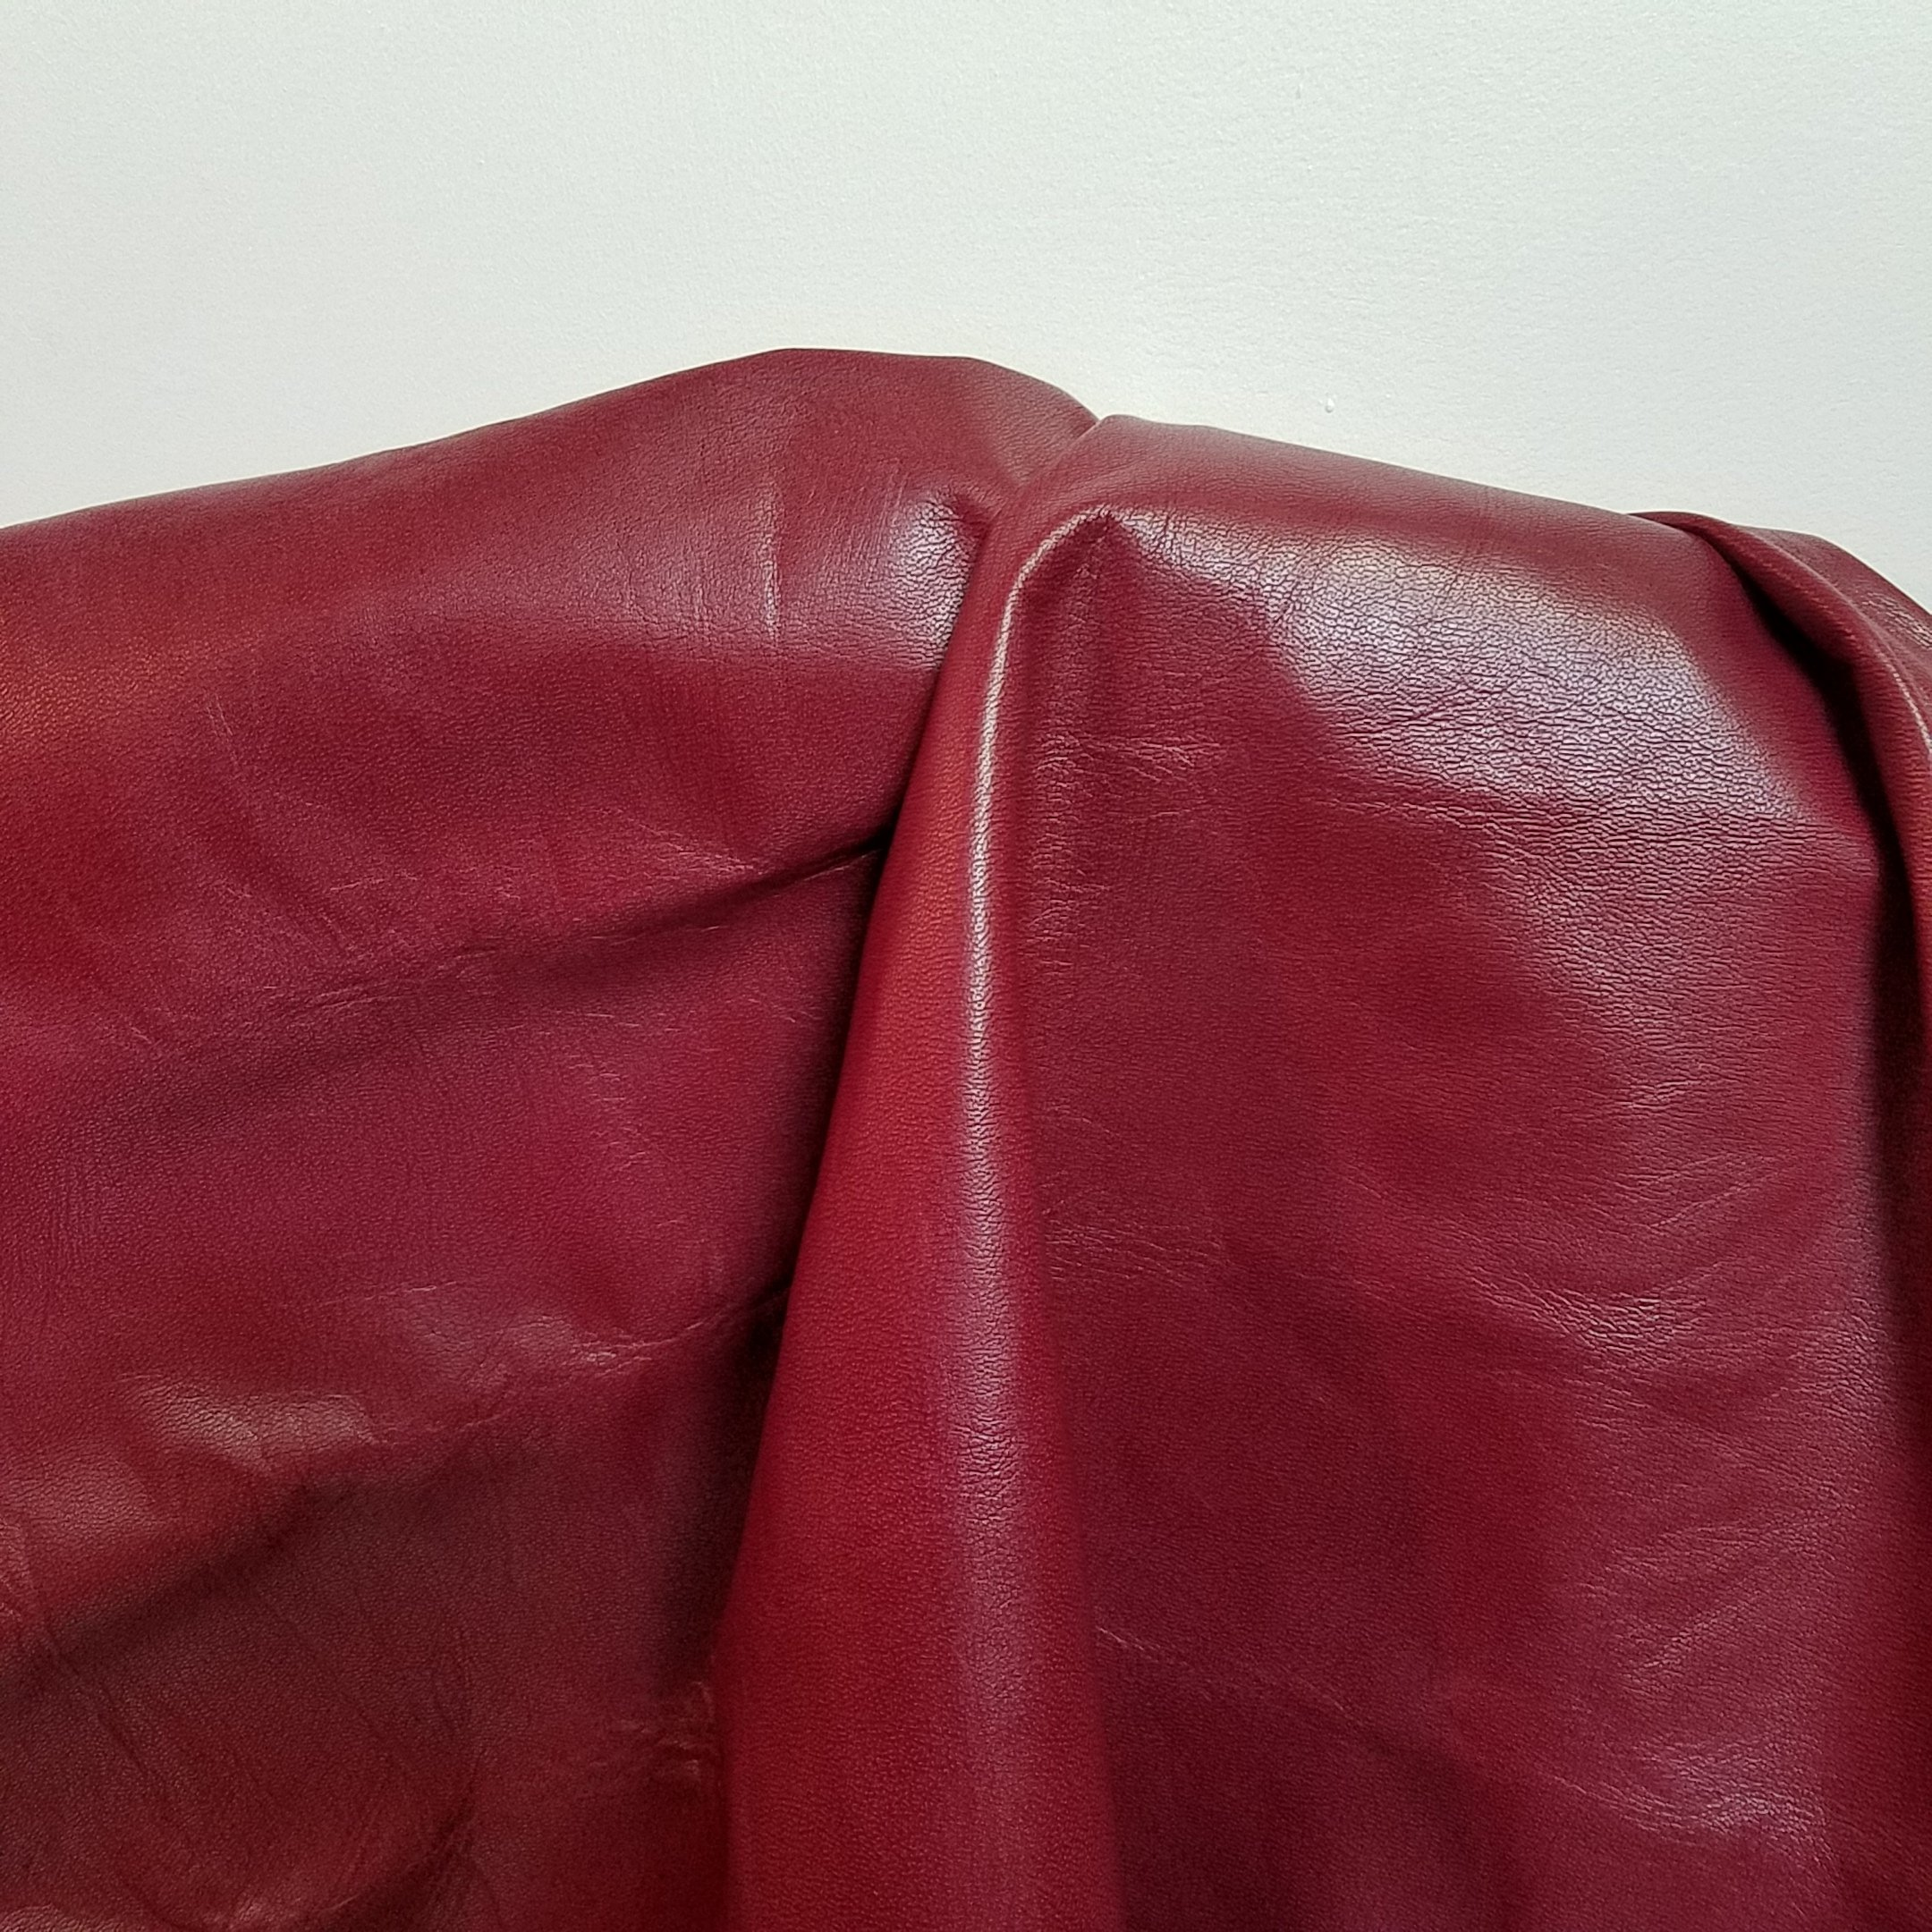 """Red Burgundy Tracker 24"""" x 30"""" leather piece cutting 2.5 oz Two Tone Soft Upholstery Chap Cowhide Genuine Leather Hide Skin (24 inch x 30 inch)"""